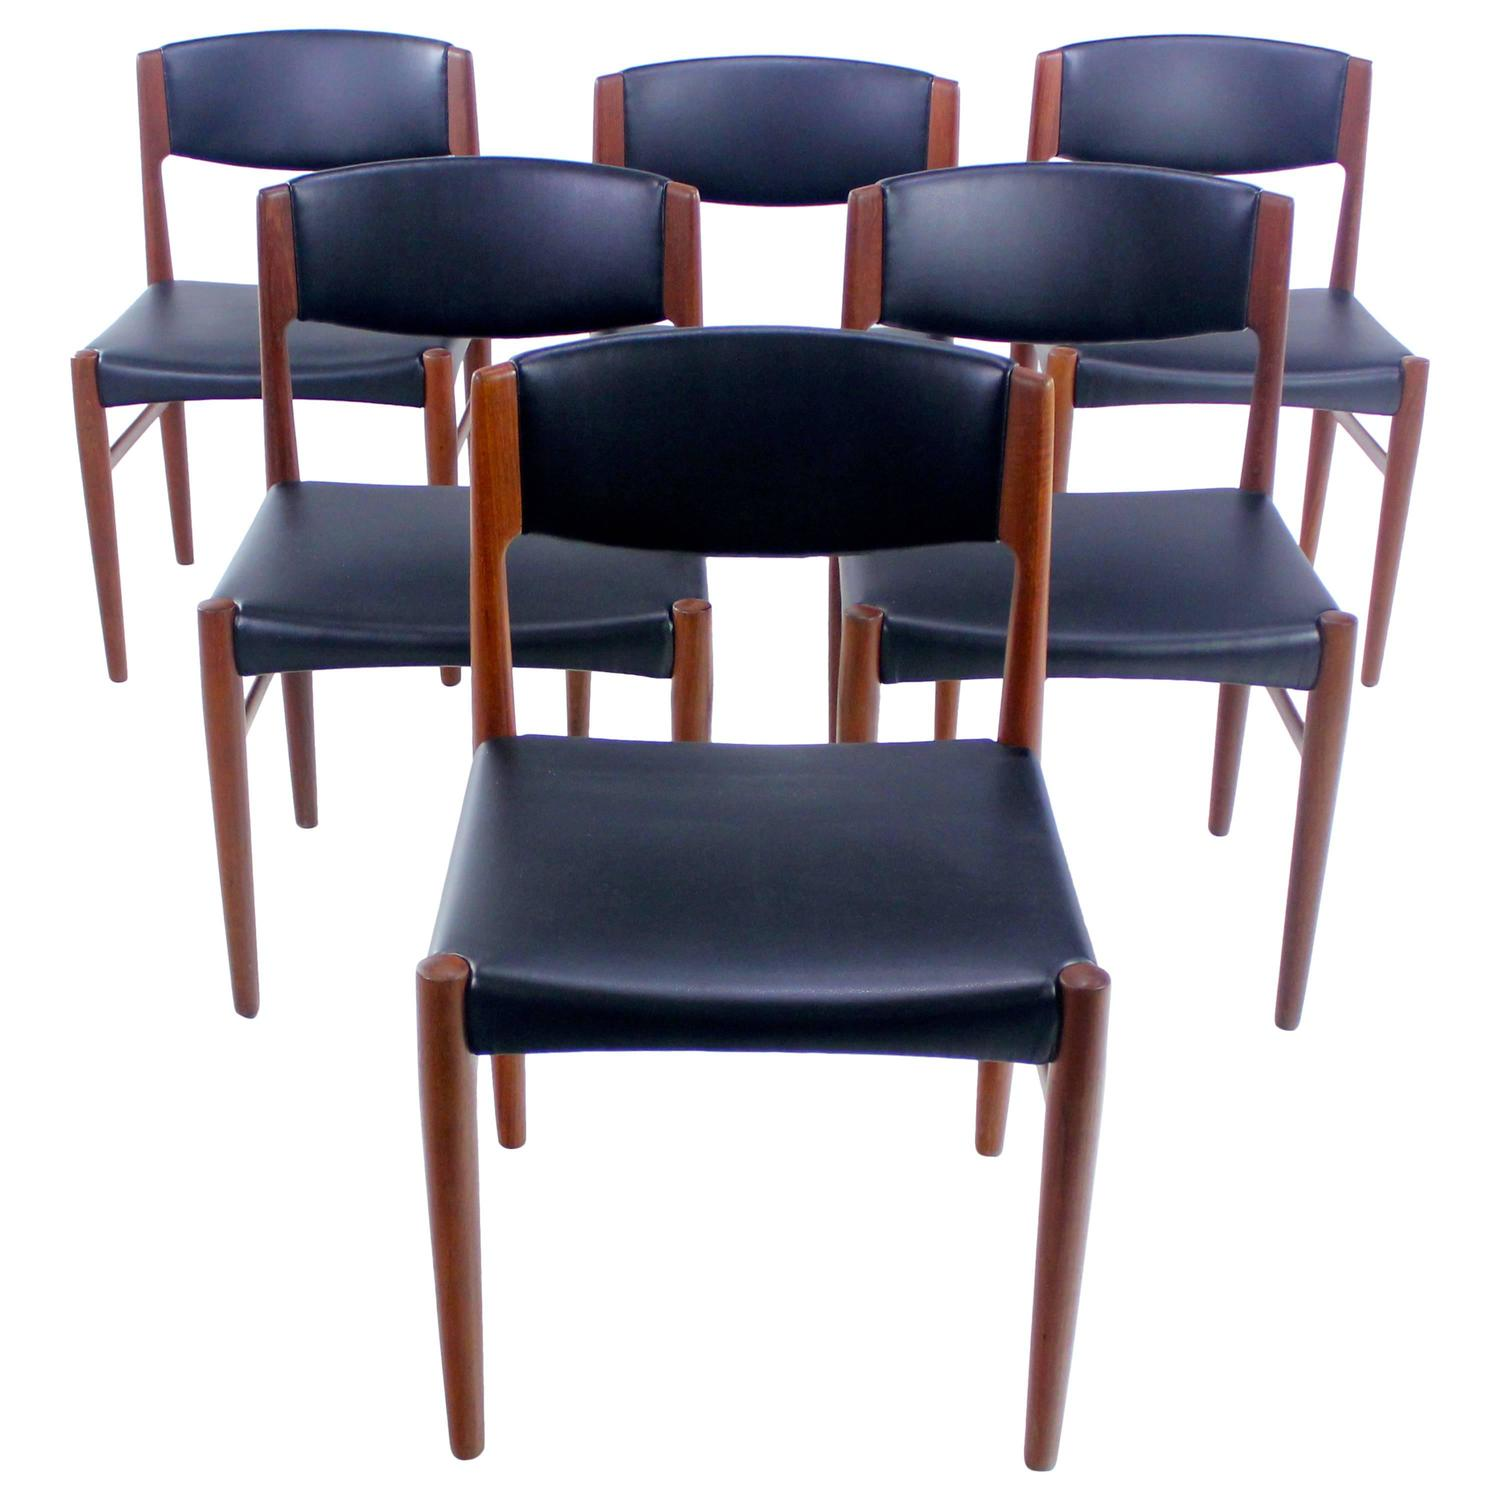 set of six danish modern teak dining chairs by glostrup mobelfabrik